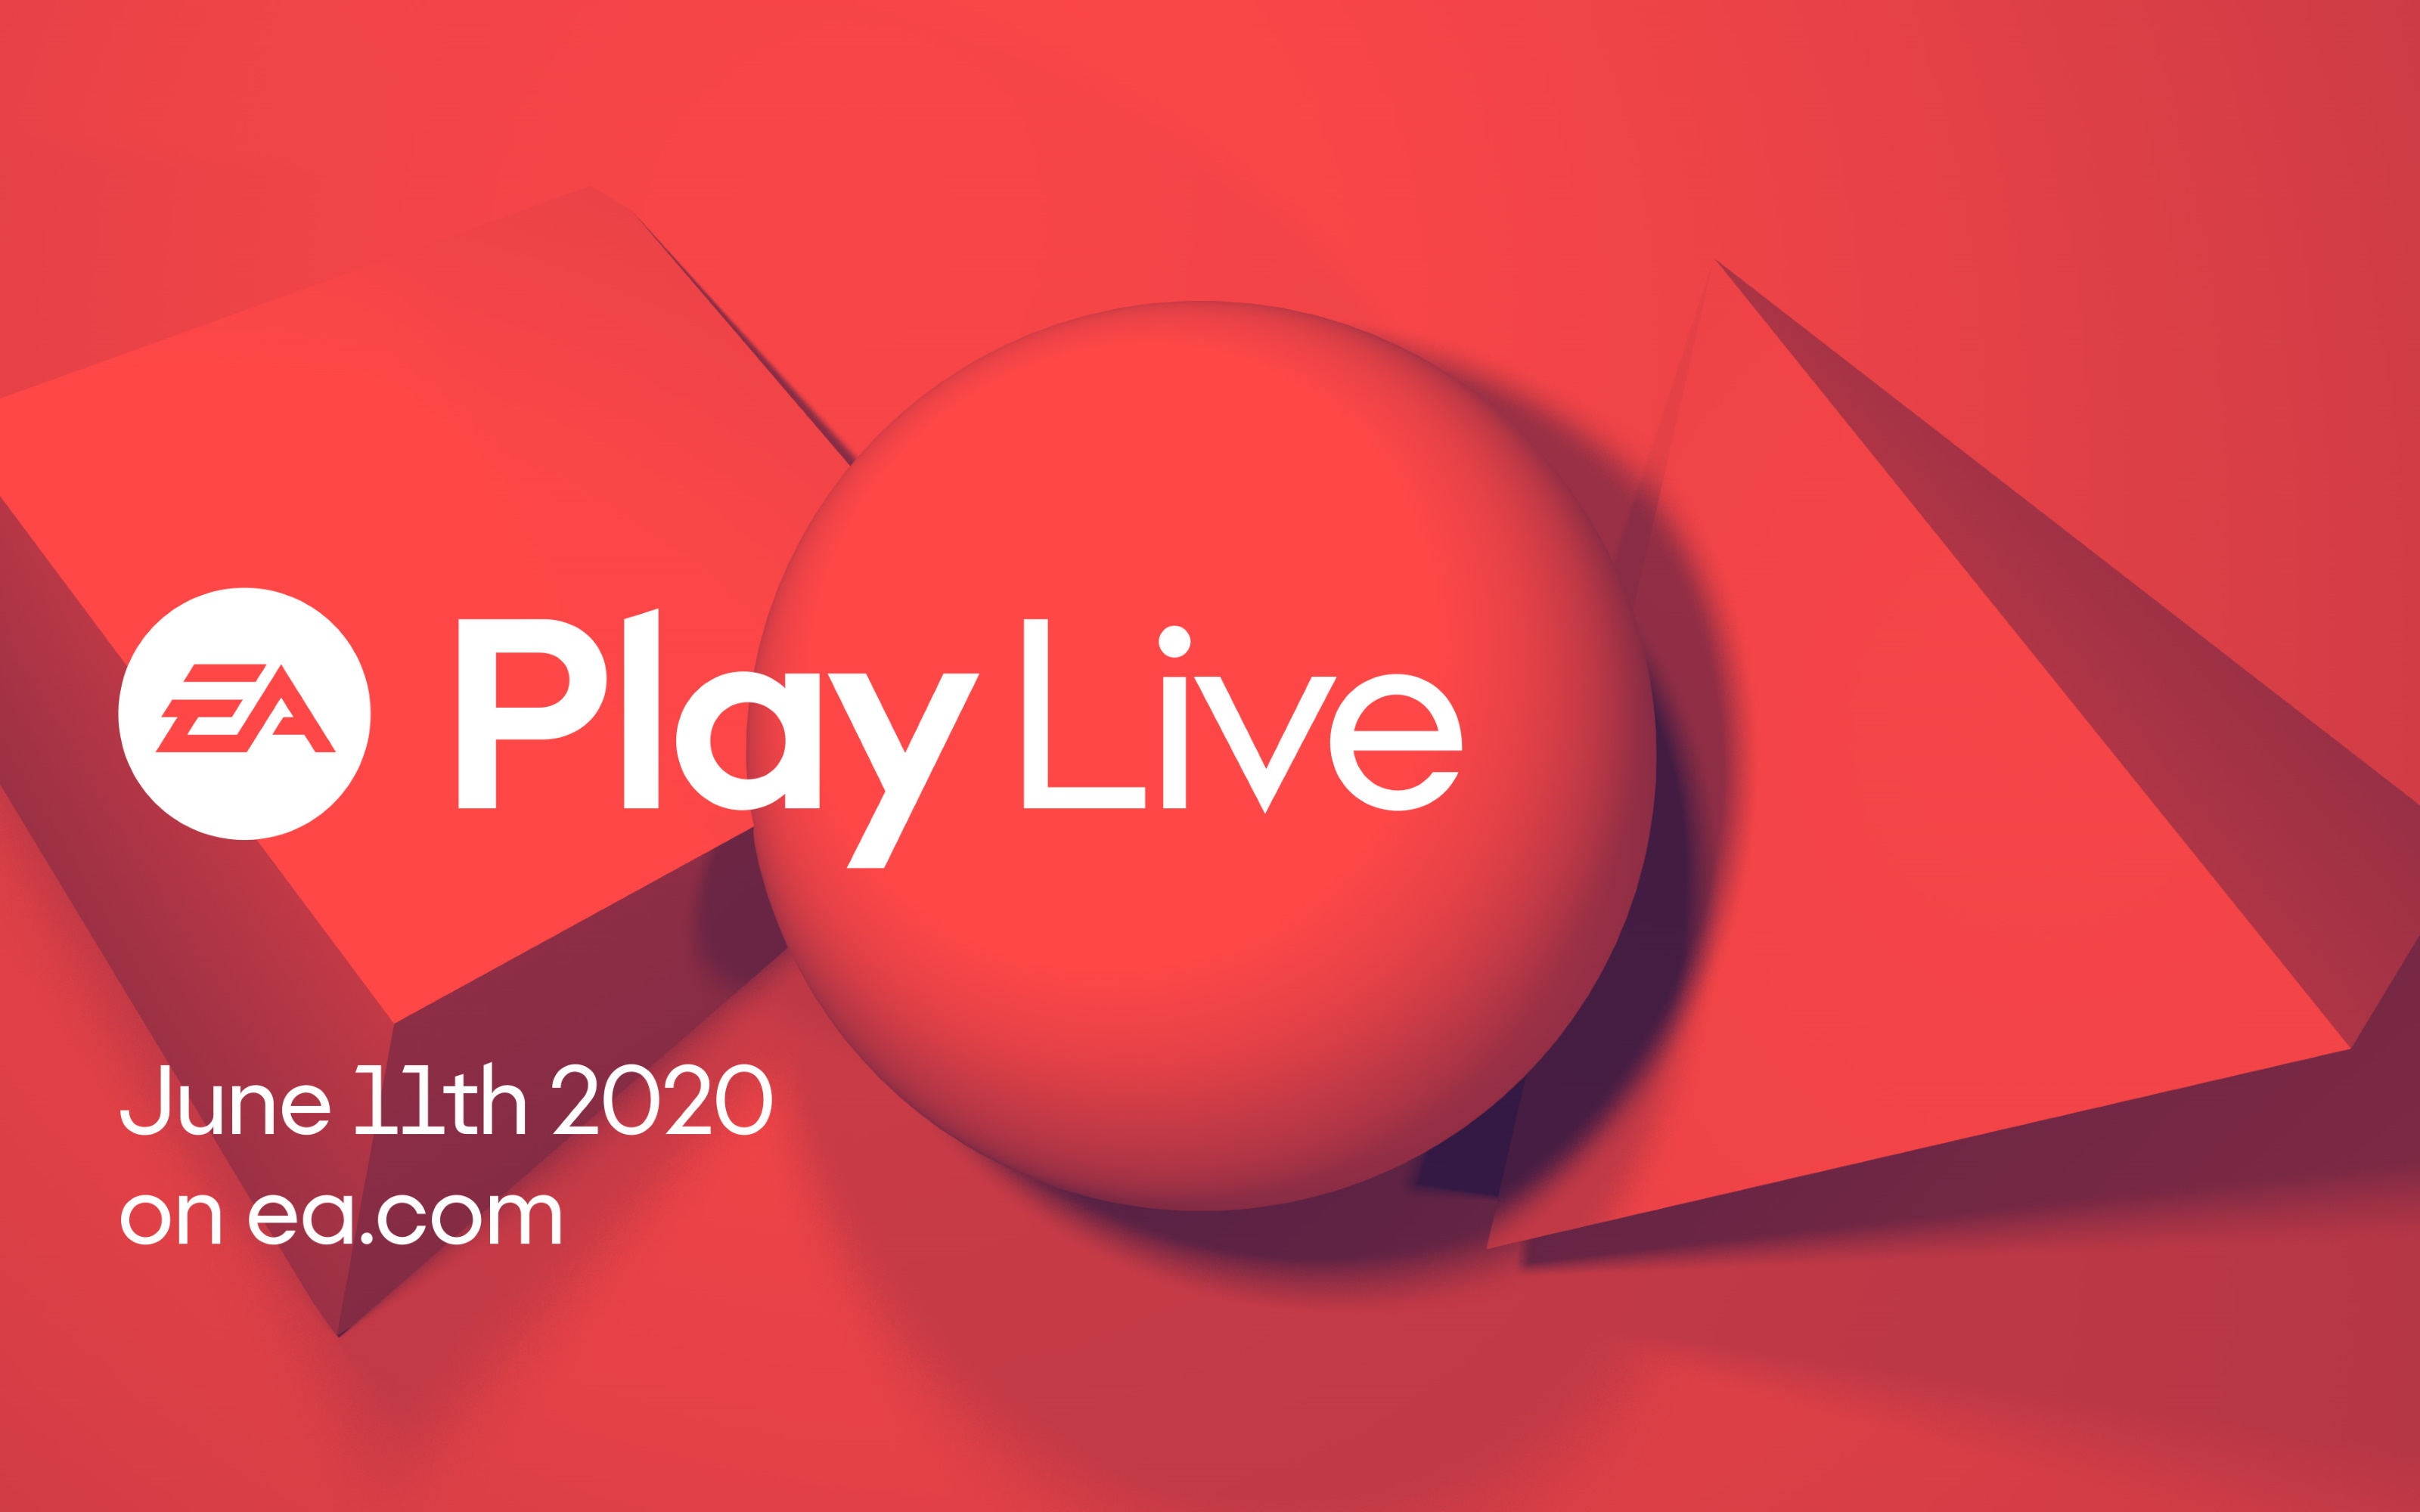 EA Play Live Event Coming June